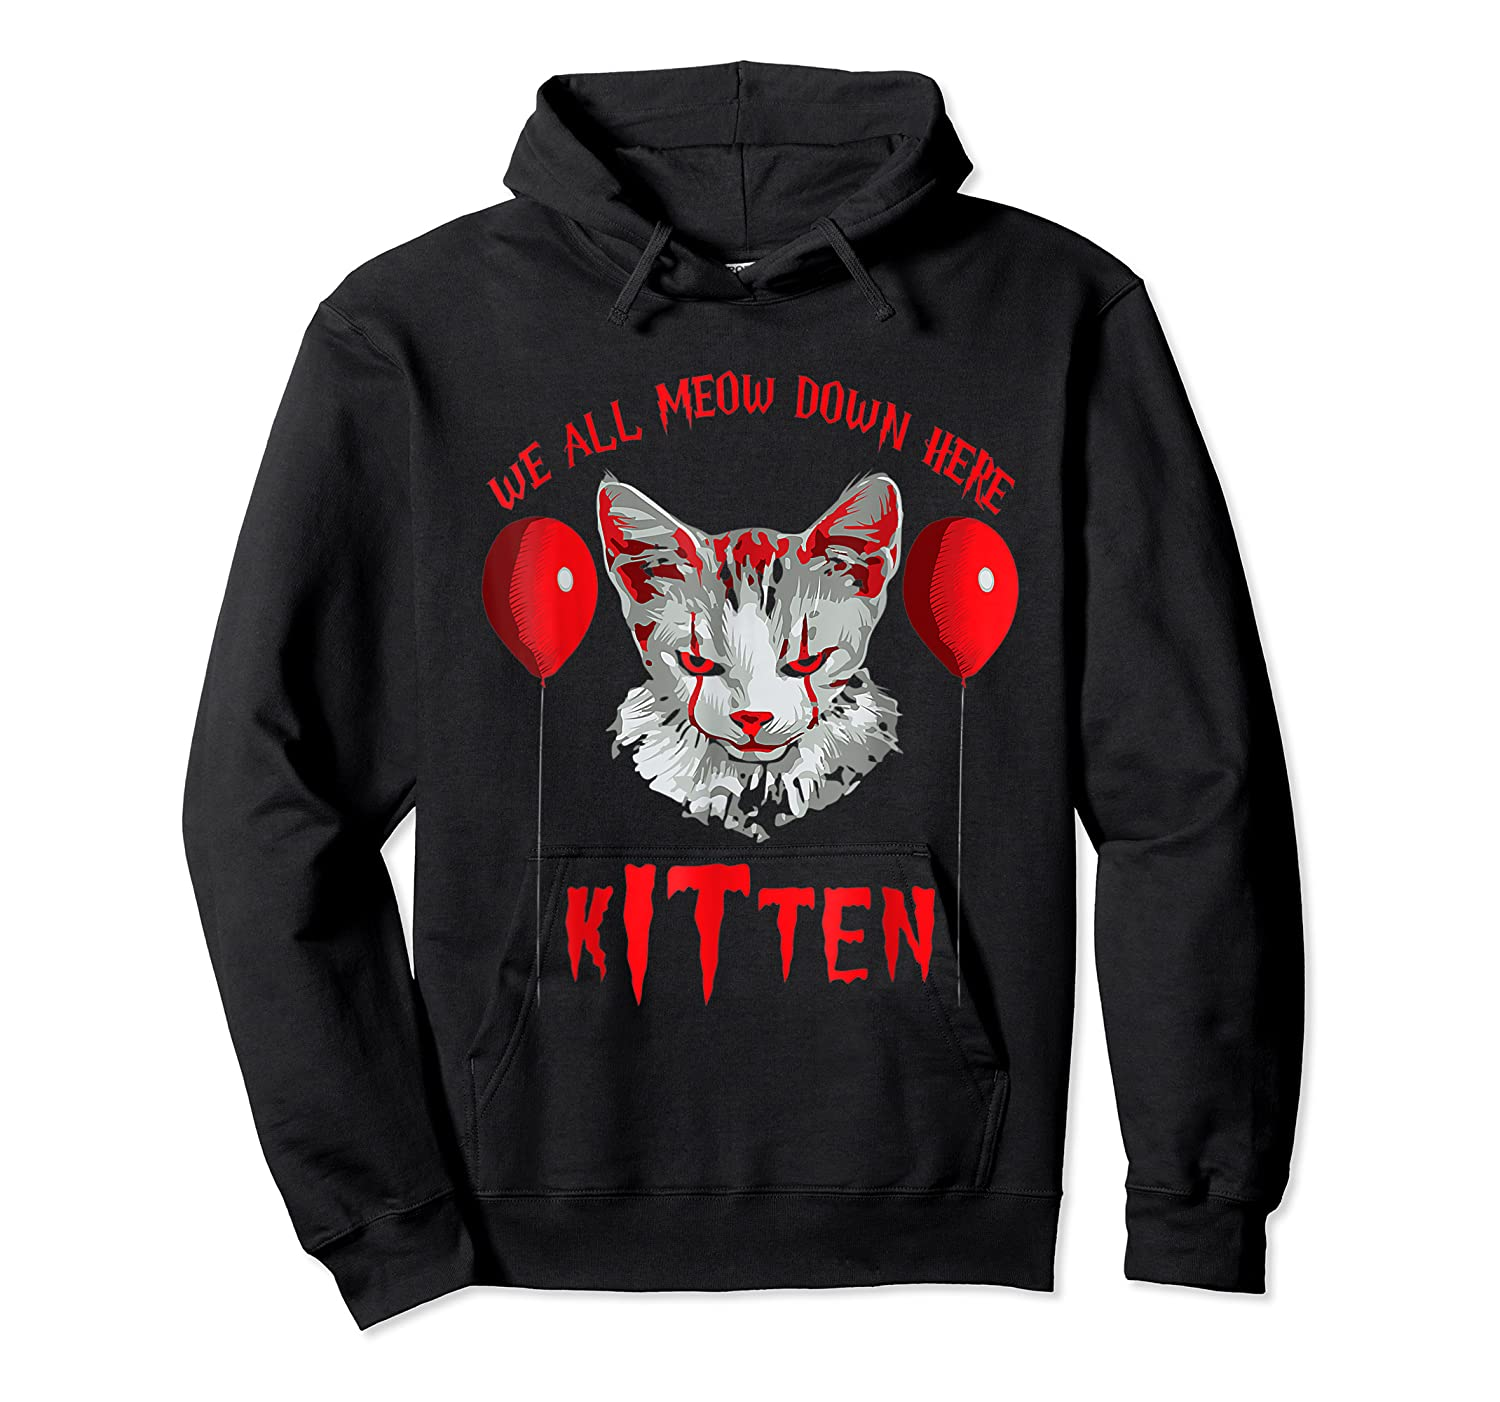 We All Meow Down Here Kitten Halloween Scary Cat T-shirt Unisex Pullover Hoodie